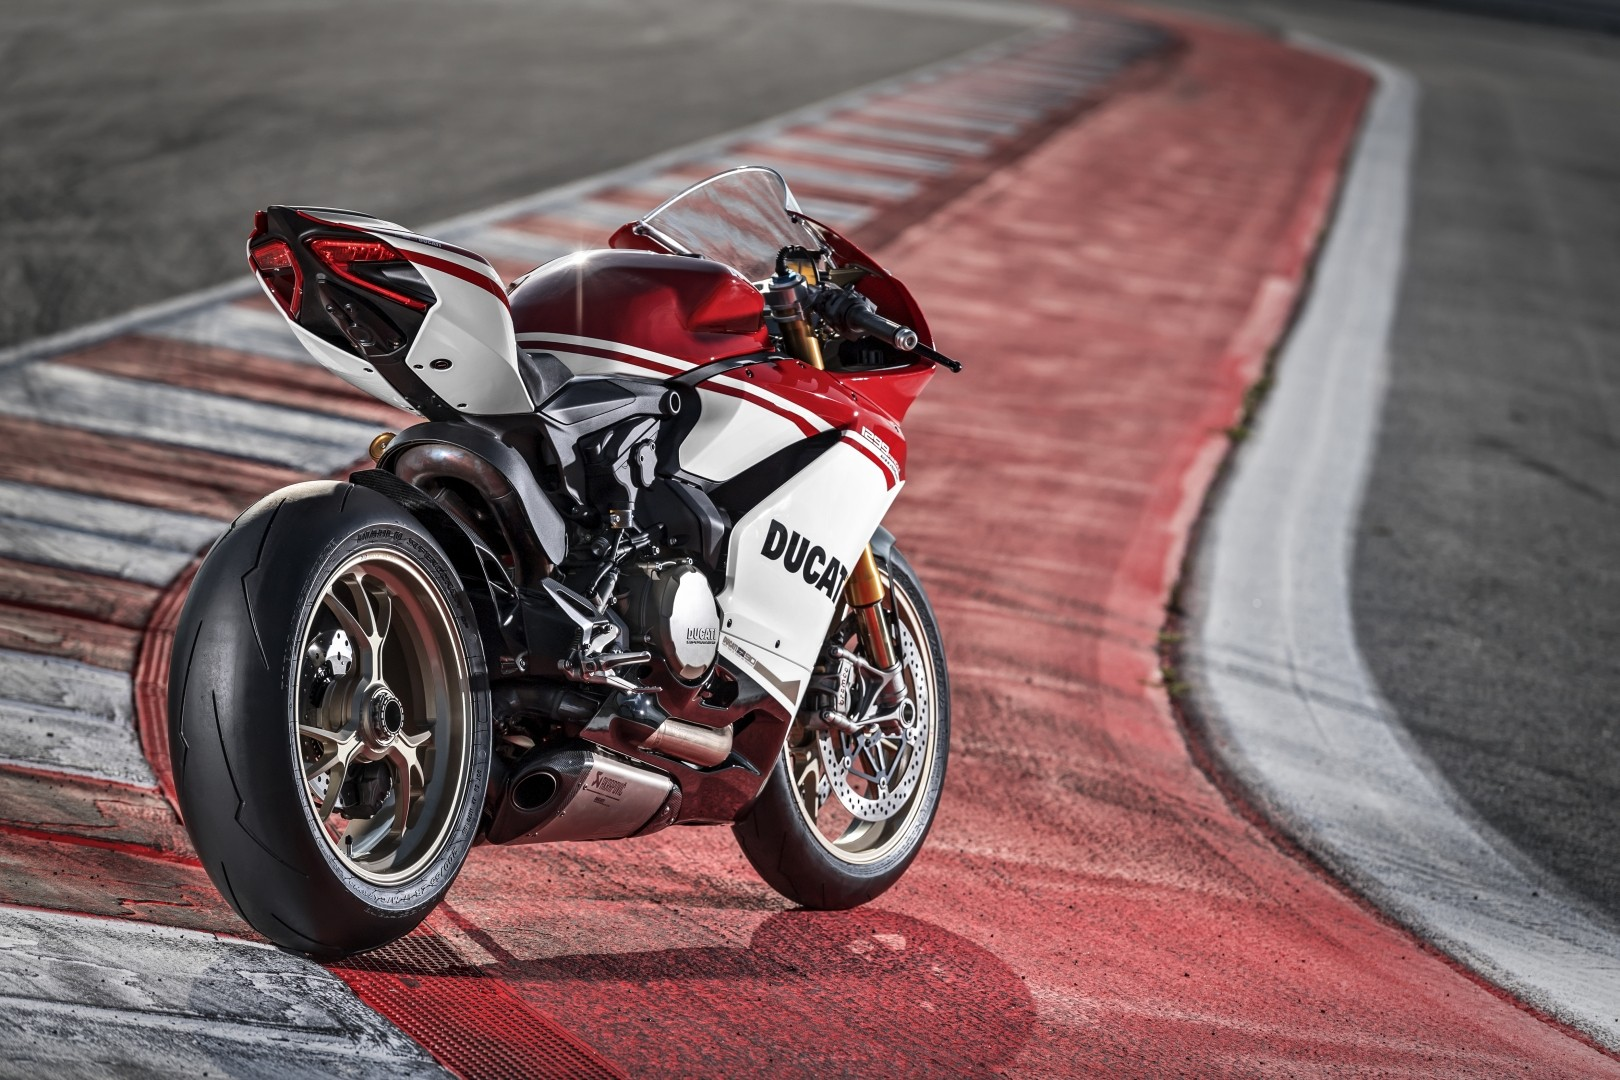 Ducati Panigale Limited Edition